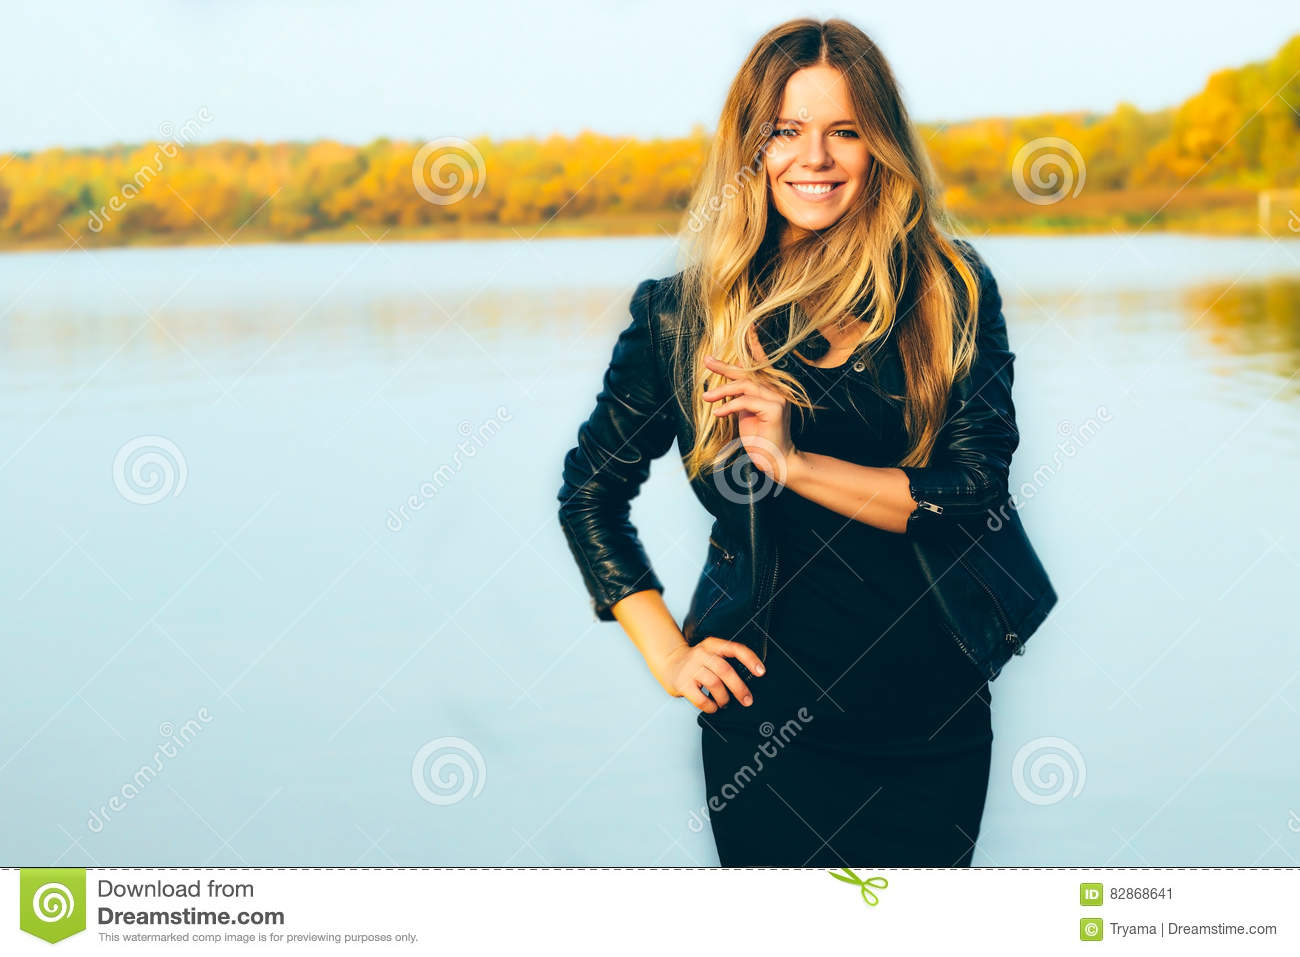 Young beautiful blonde woman in autumn park with lake in dark leather jacket smile perfect teeth during sunset.